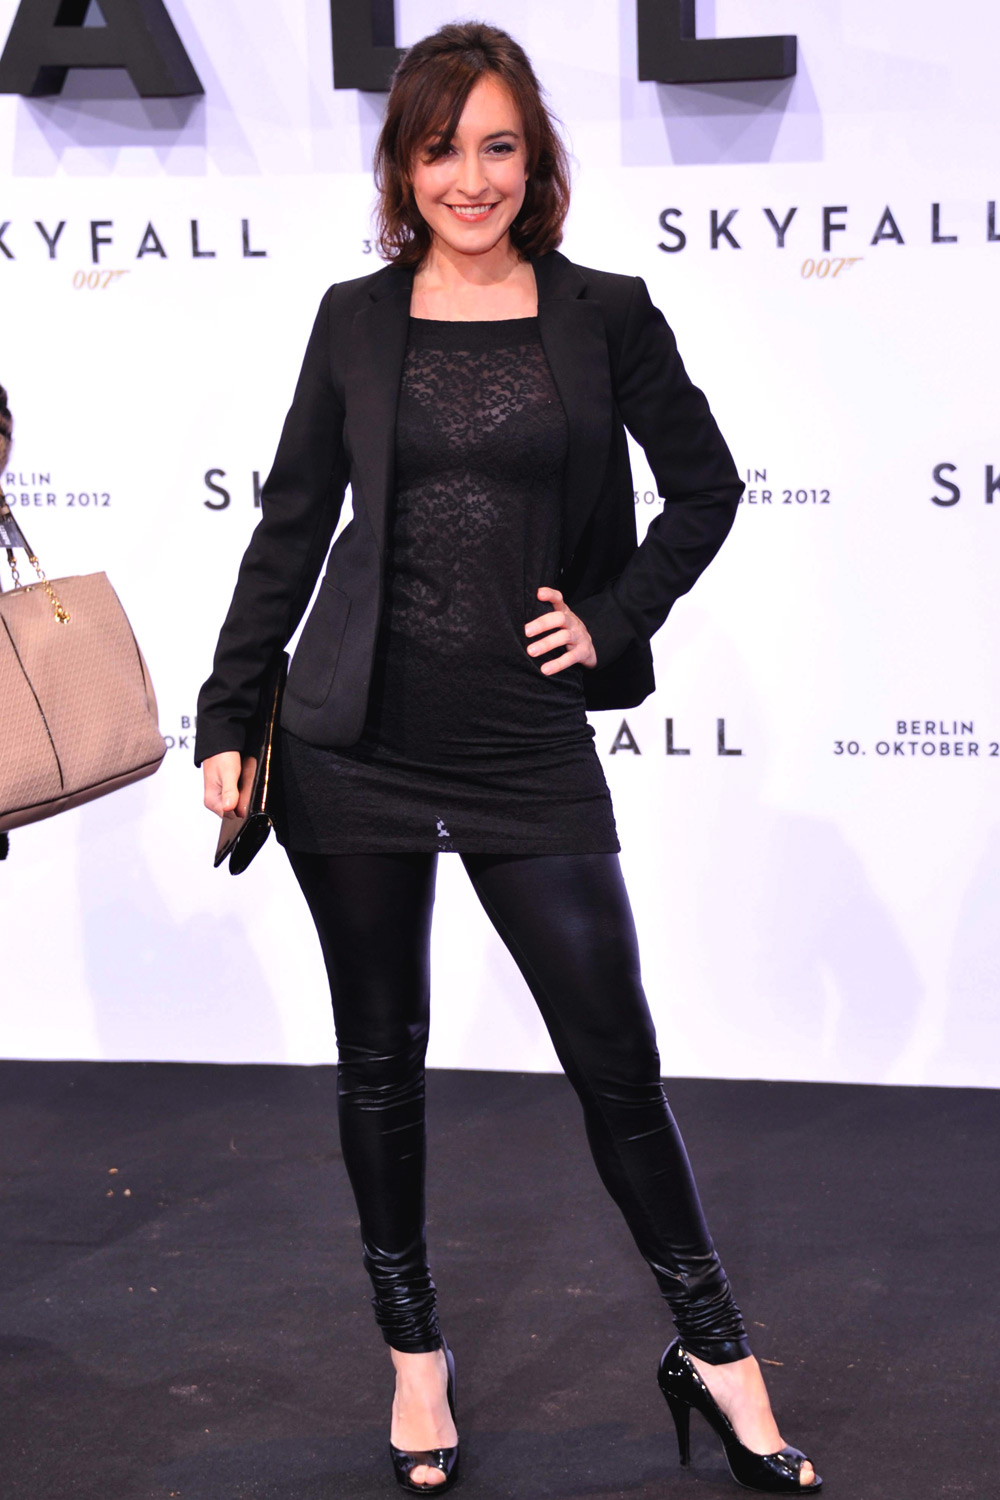 Maike von Bremen attends the German premiere of Skyfall